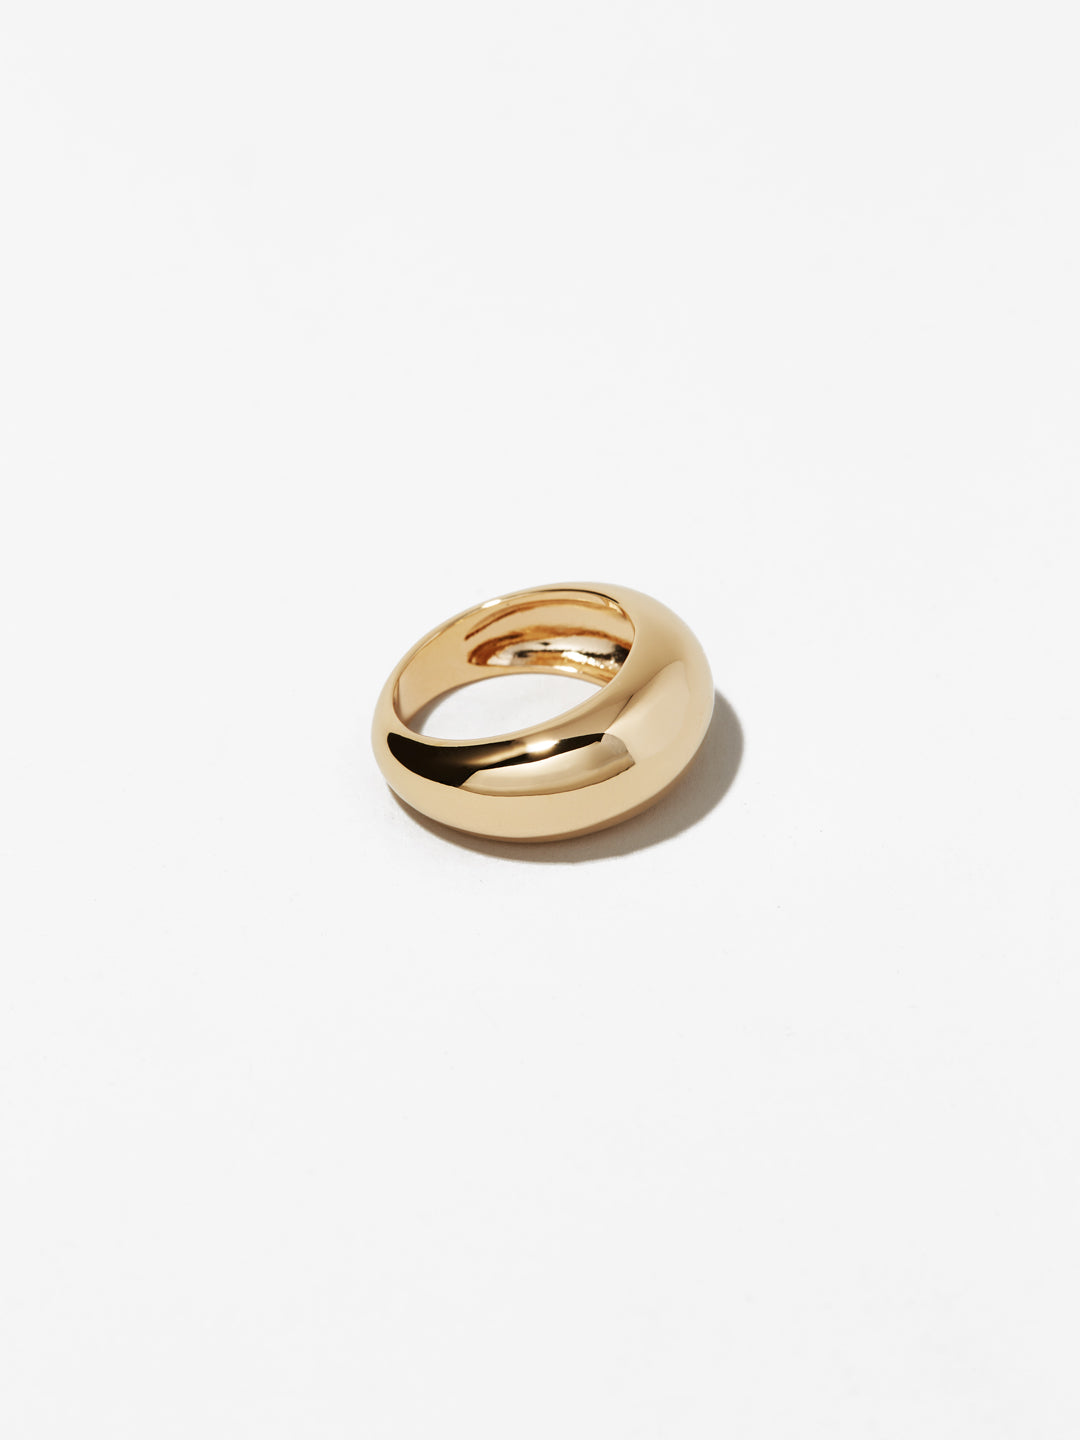 Ana Luisa Jewelry Rings Band Gold Dome Ring Noa